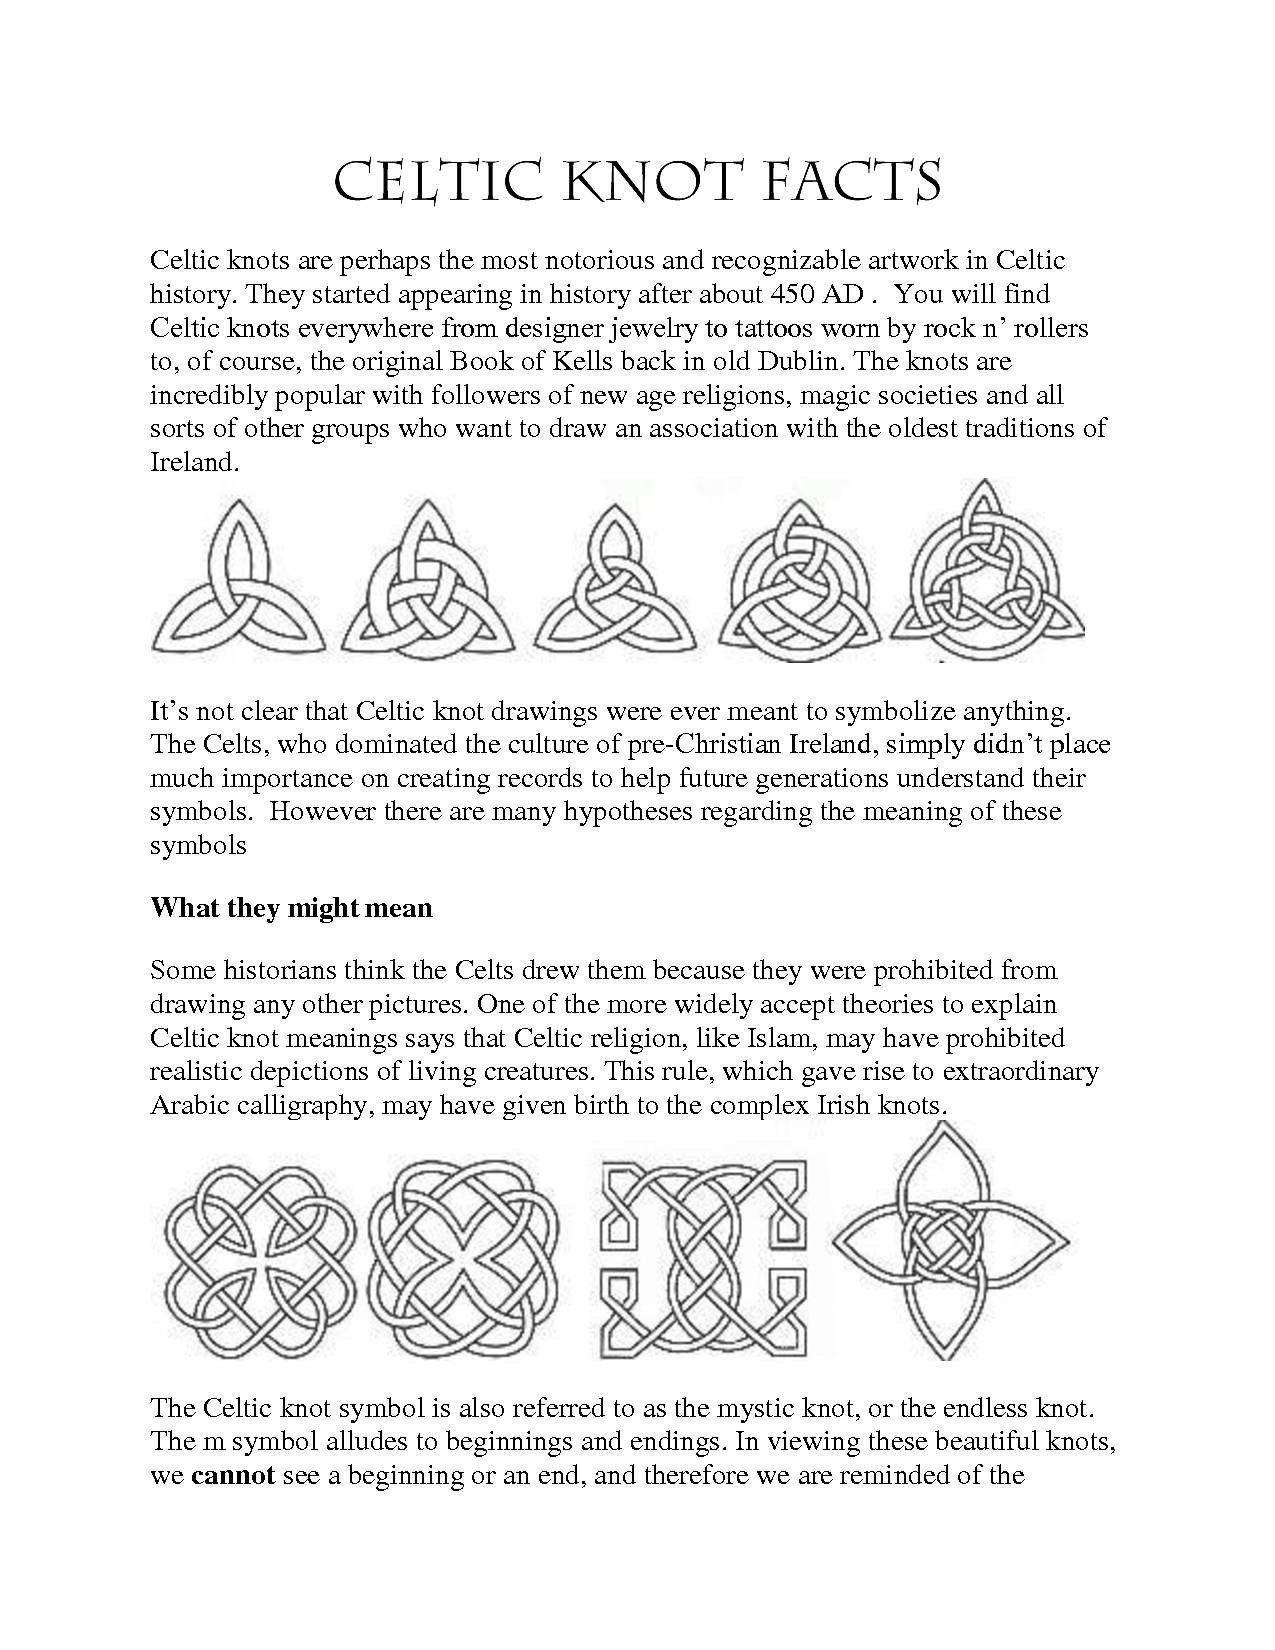 celtic designs and their meanings celtic symbols and their meanings for tattoos celtic knots. Black Bedroom Furniture Sets. Home Design Ideas